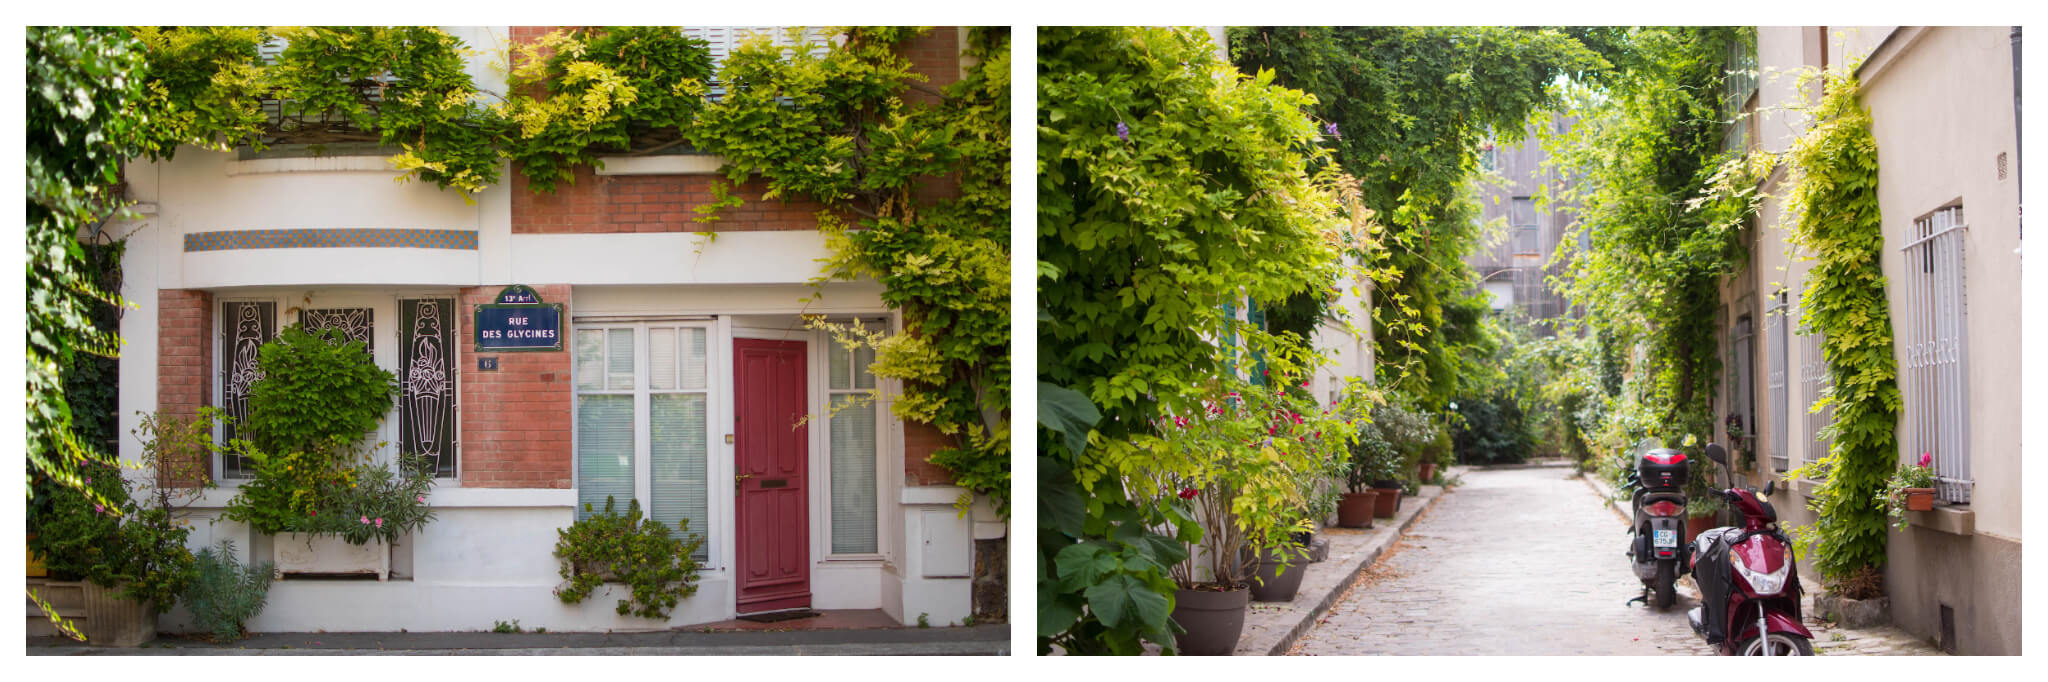 On left: In the Quartier de la Mouzaïa, located in Paris' 19th arrondissement, a quaint red door sits nestled in under lush vines on a sunny summer day. On right: The rue des Thermopyles, in Paris' 14th arrondissement, is quiet on a sunny day, light bouncing off of the abundant greenery.